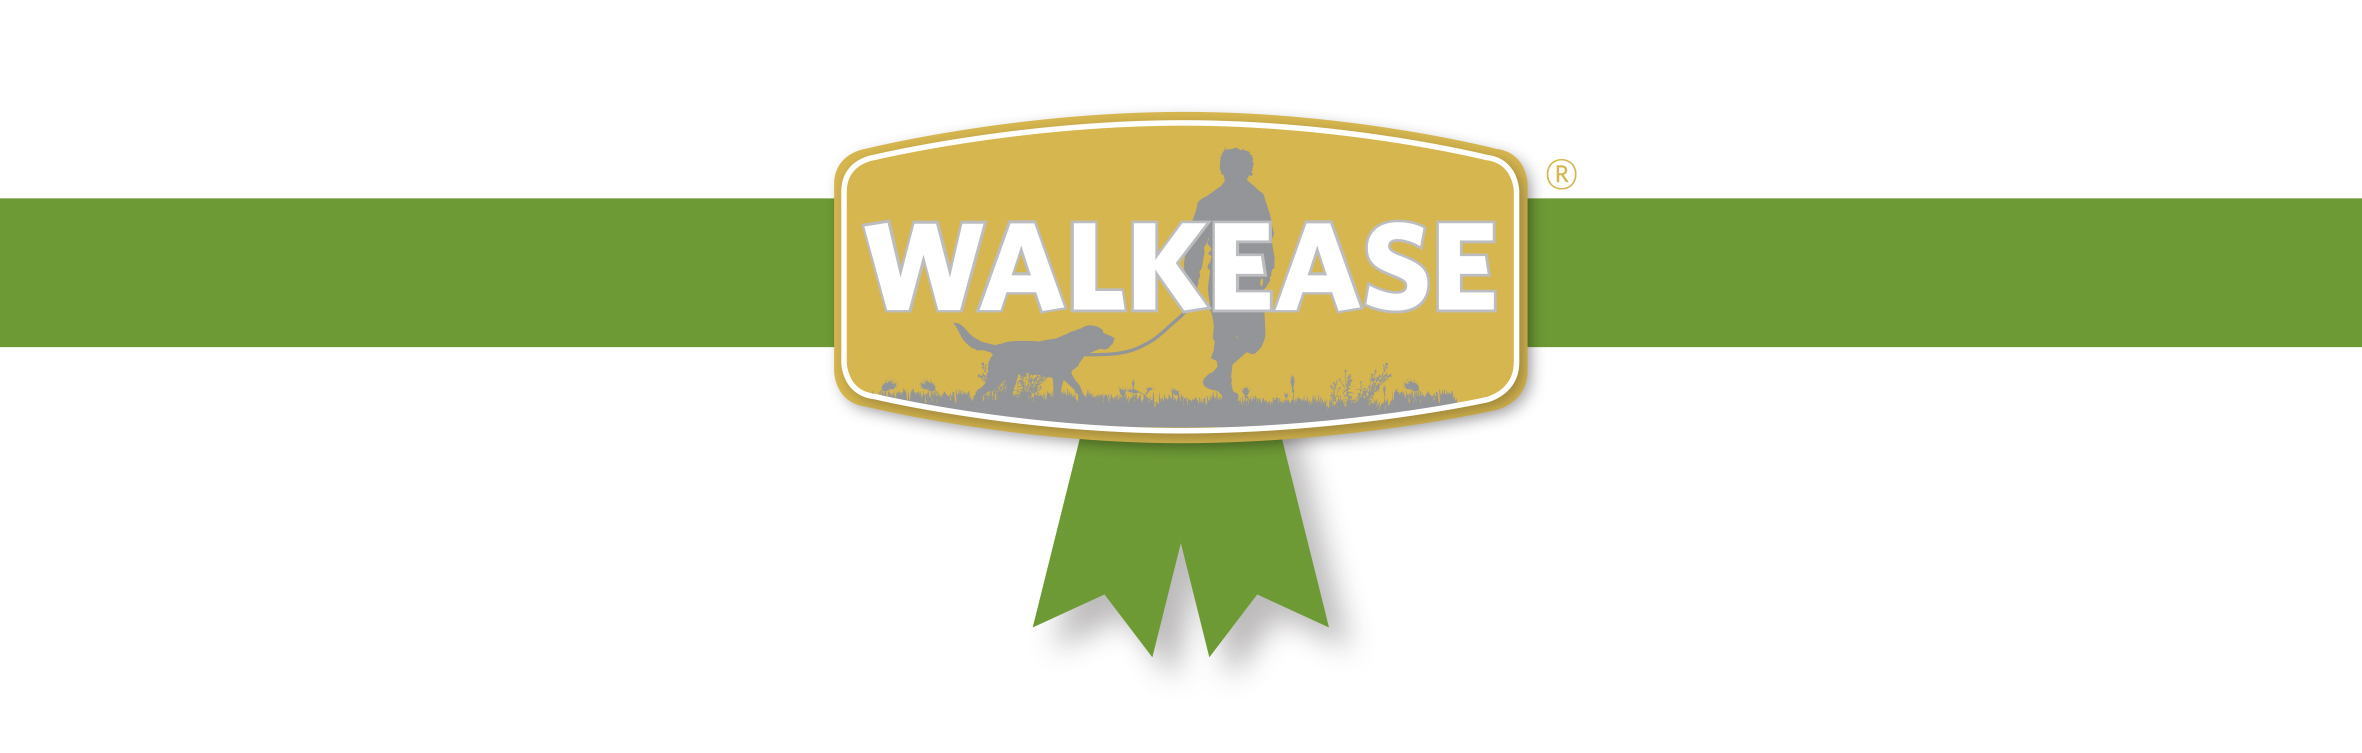 Walkease-logo.jpg